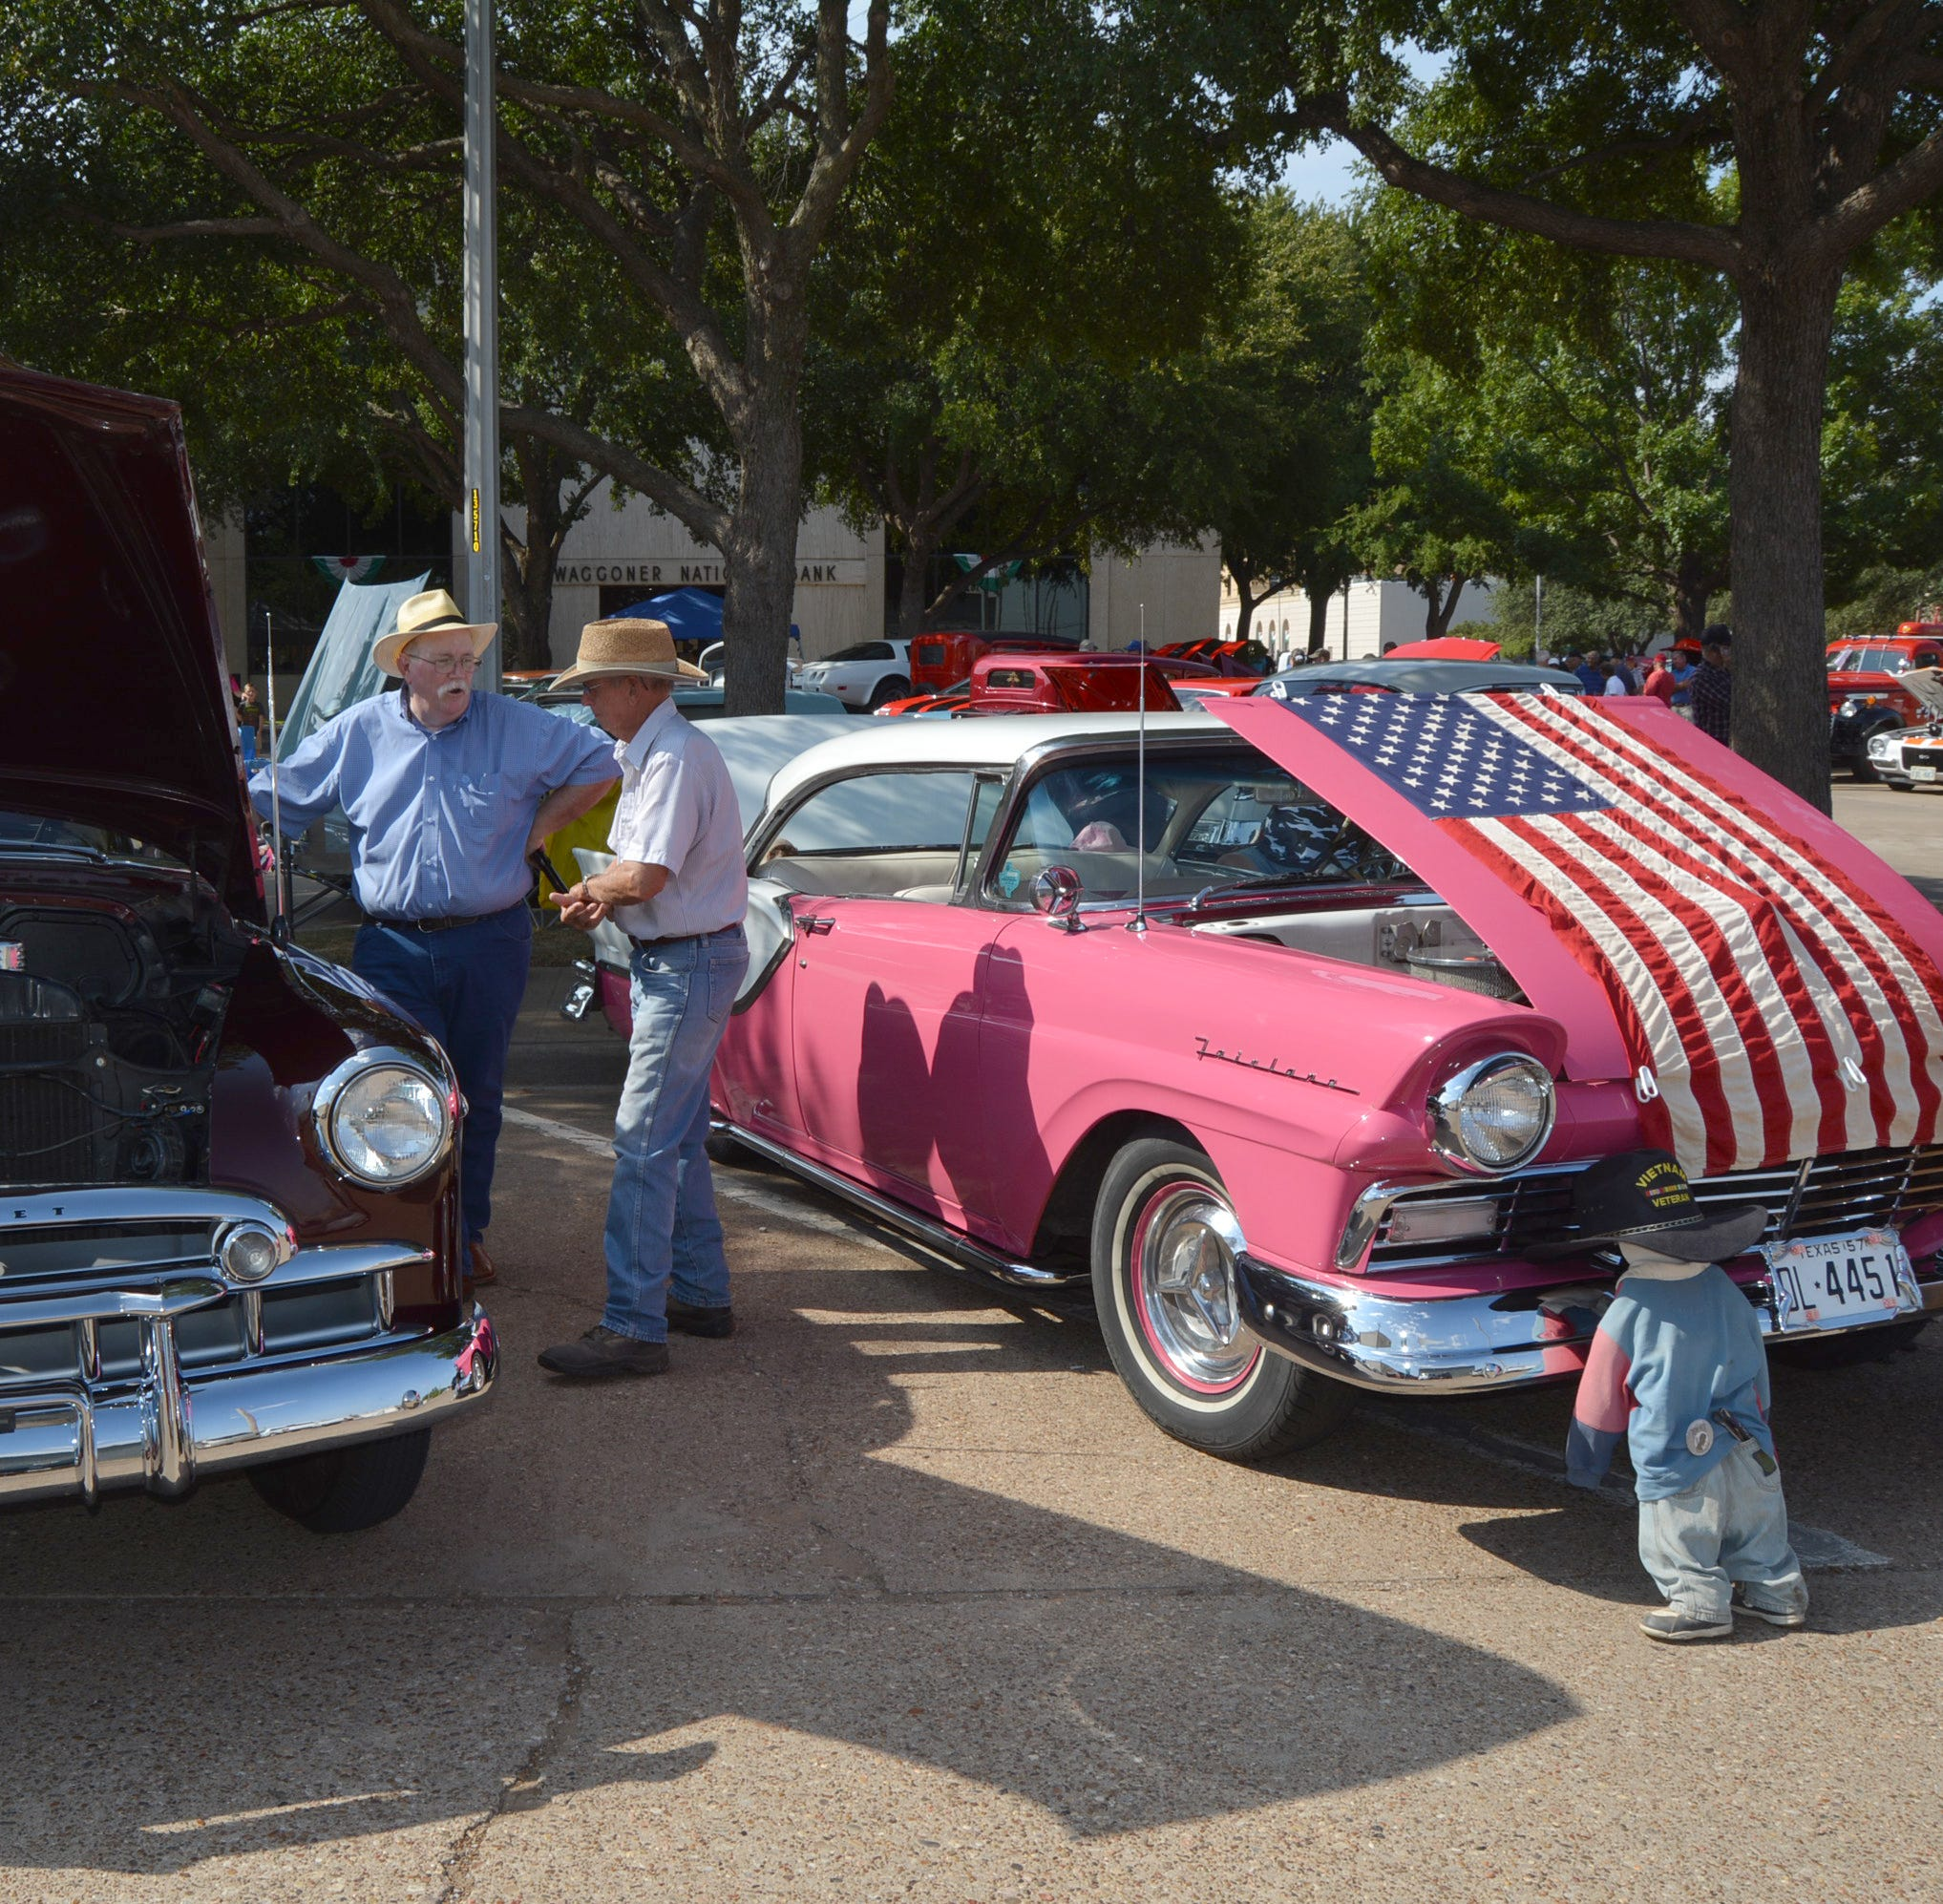 More than 900 vehicles featured in Vernon, Texas, Summer's Last Blast car celebration